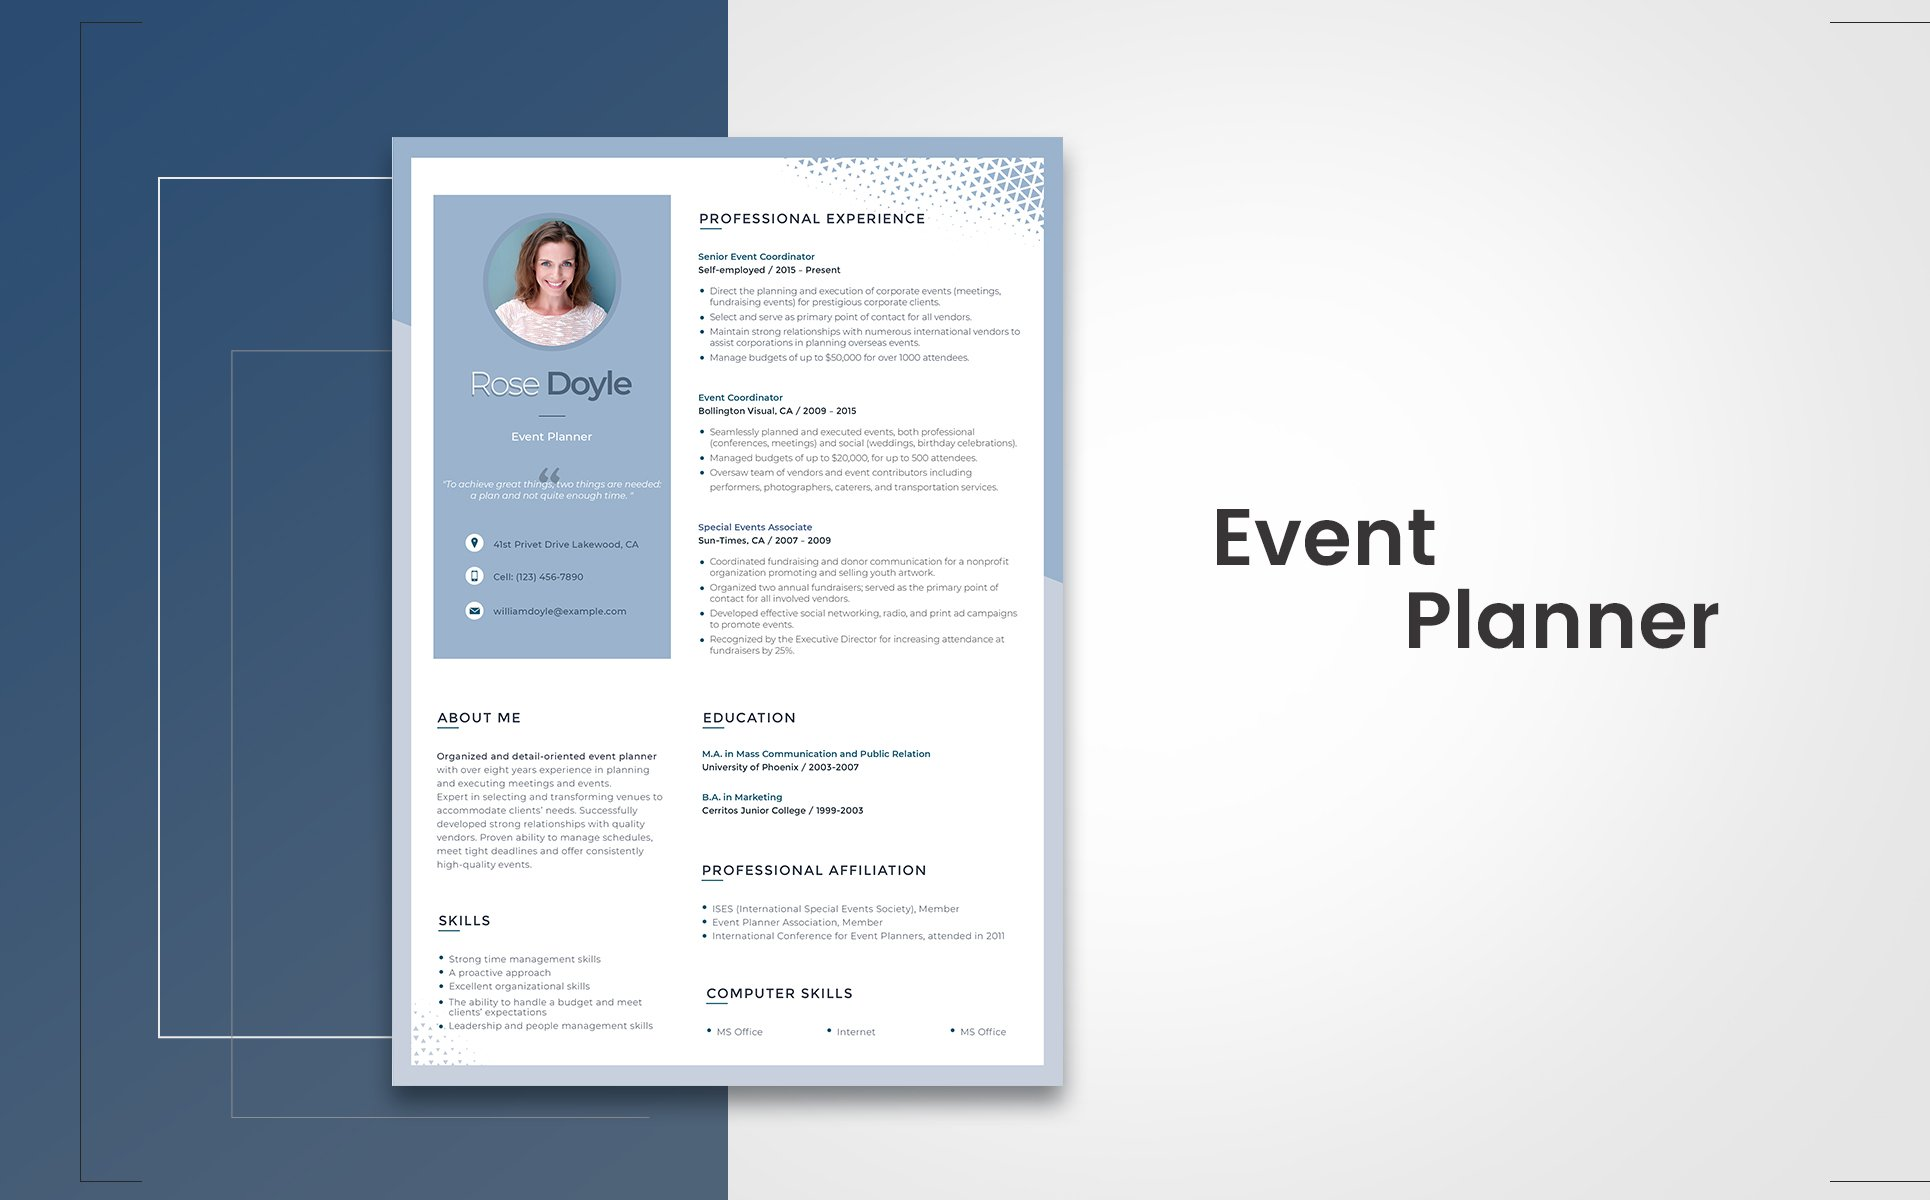 Rose Doyle   Event Manager Resume Template Big Screenshot  Point Of Contact Template